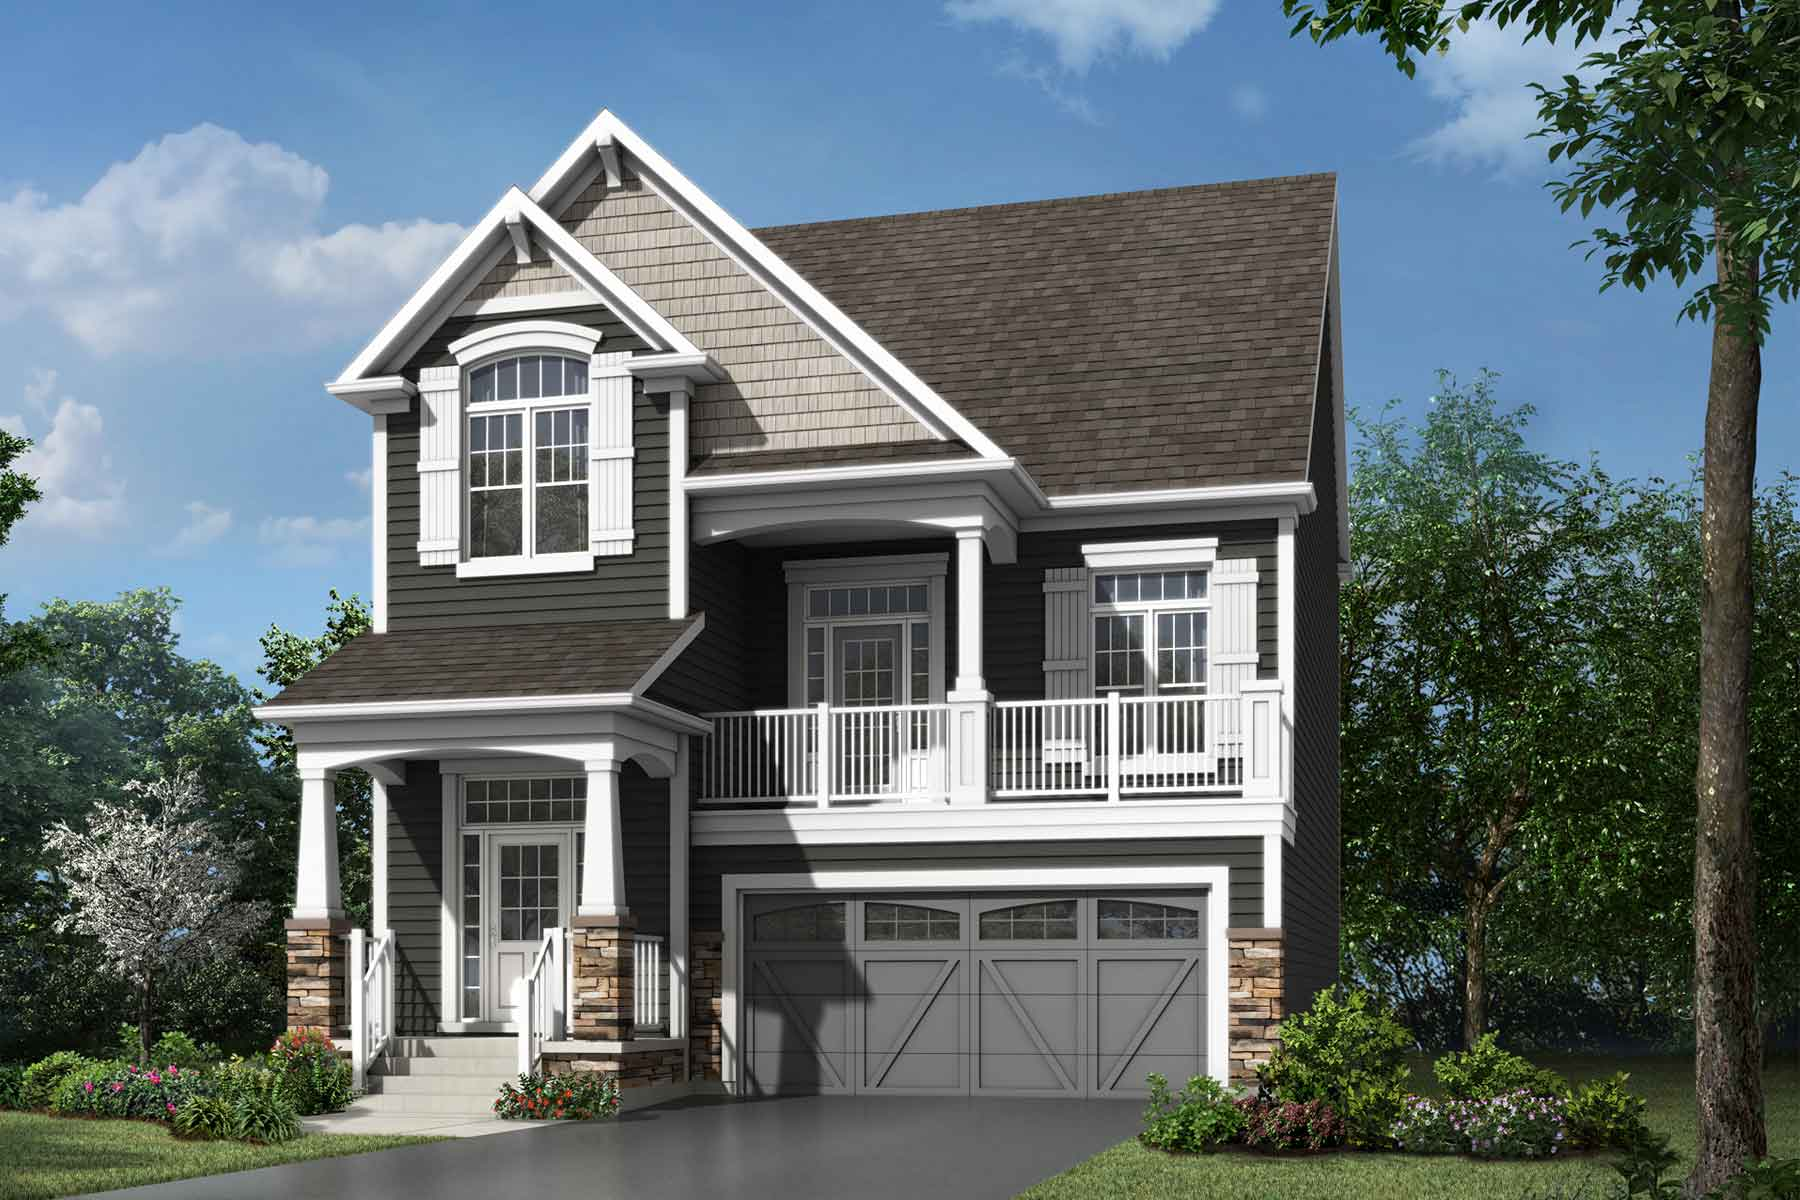 Onyx Plan elevationcraftsman_southwinds_onyx at Southwinds in Airdrie Alberta by Mattamy Homes